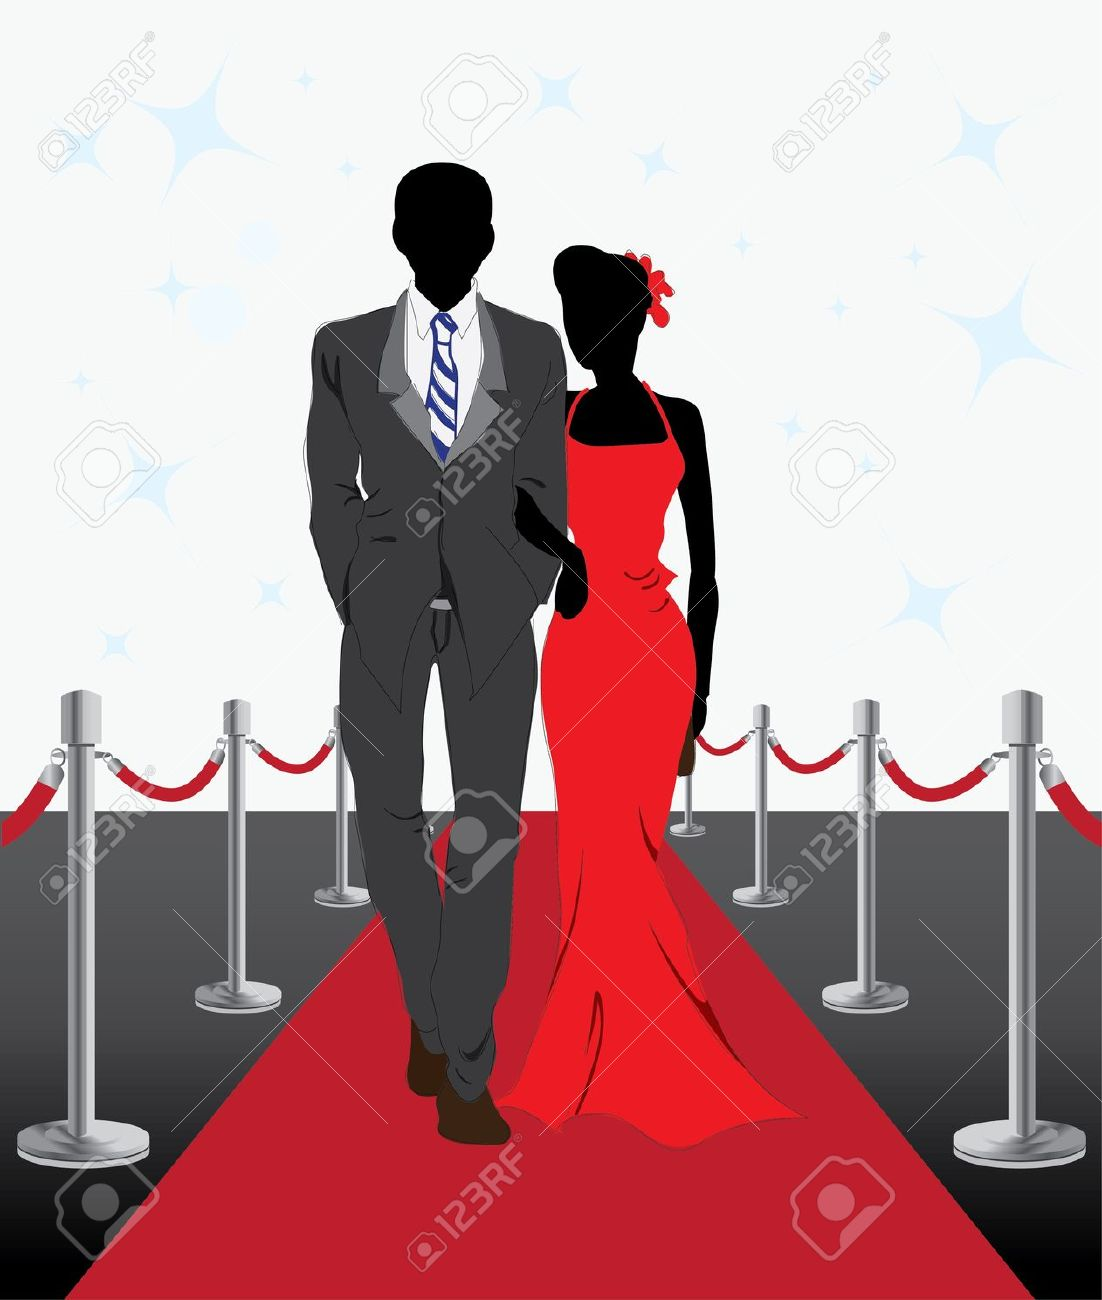 Gala event clipart.